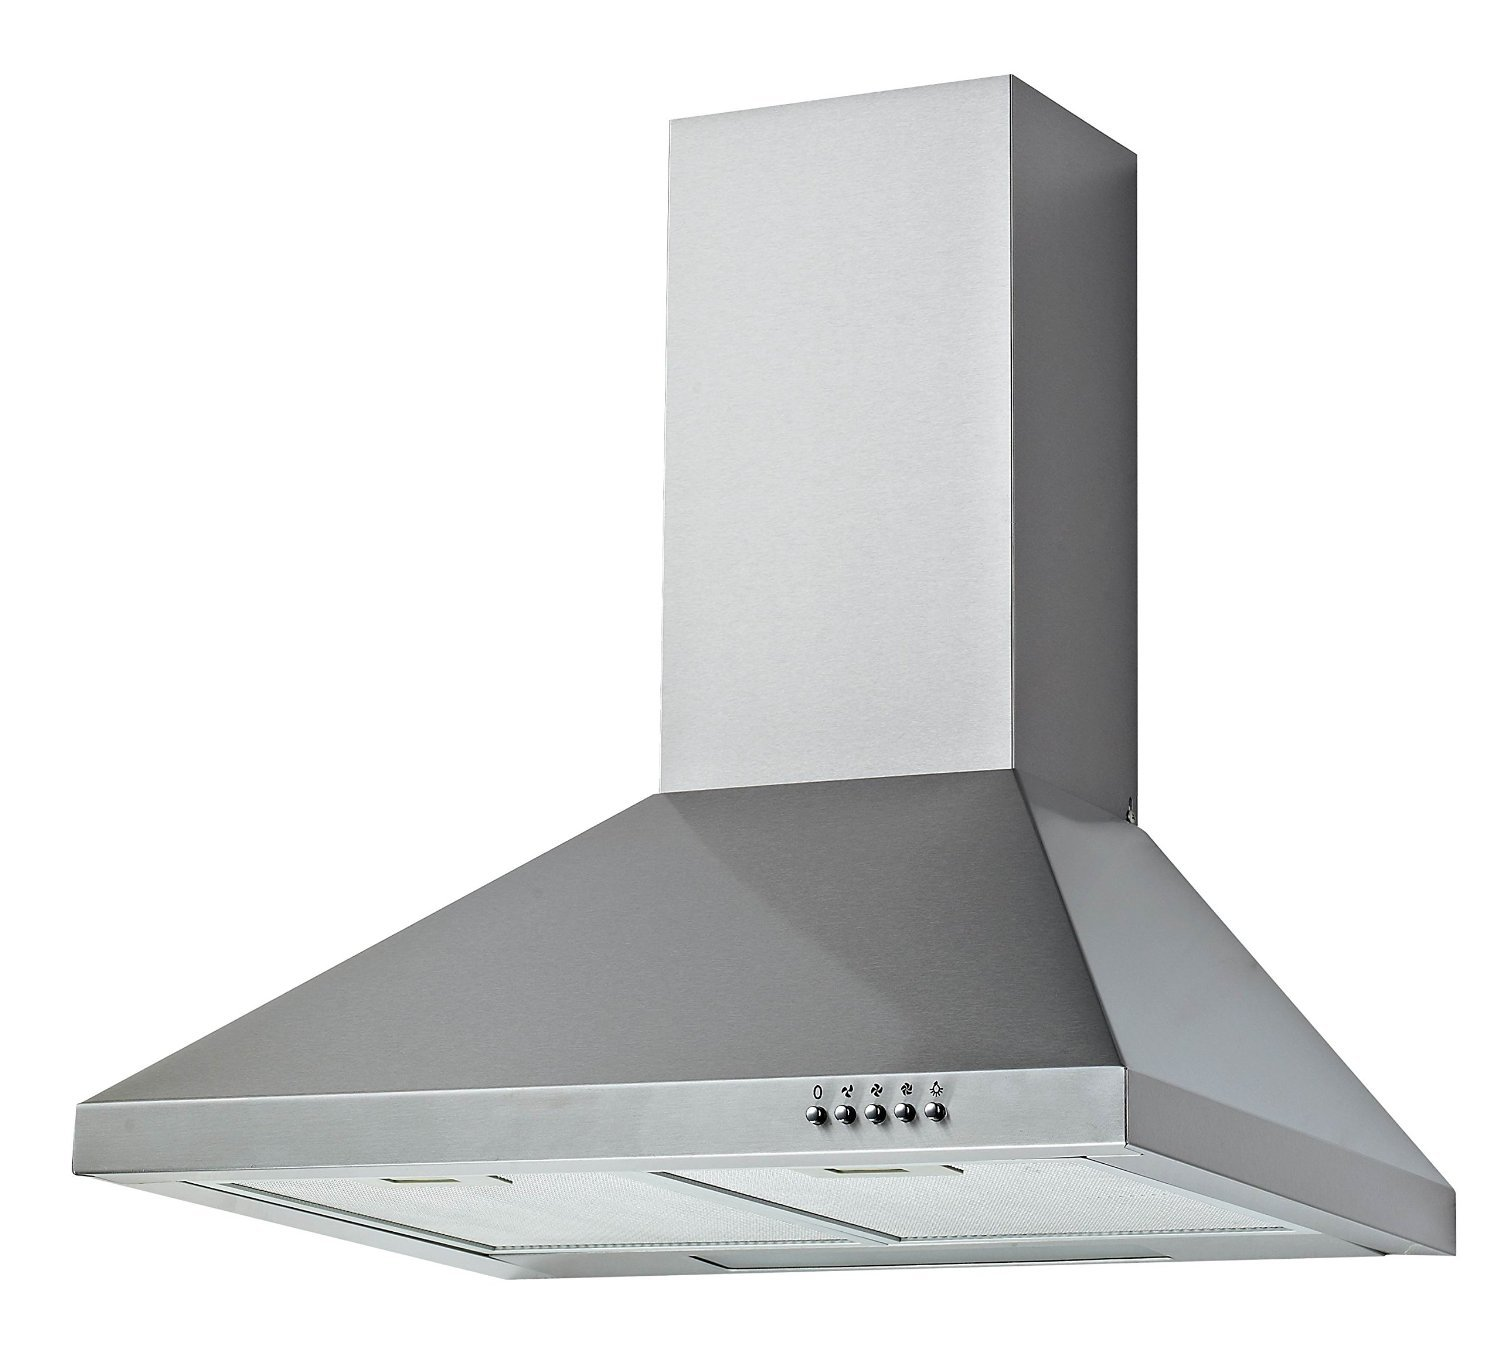 Top 10 Kitchen Chimney Brands Reviews & Price List | Review Fantasy